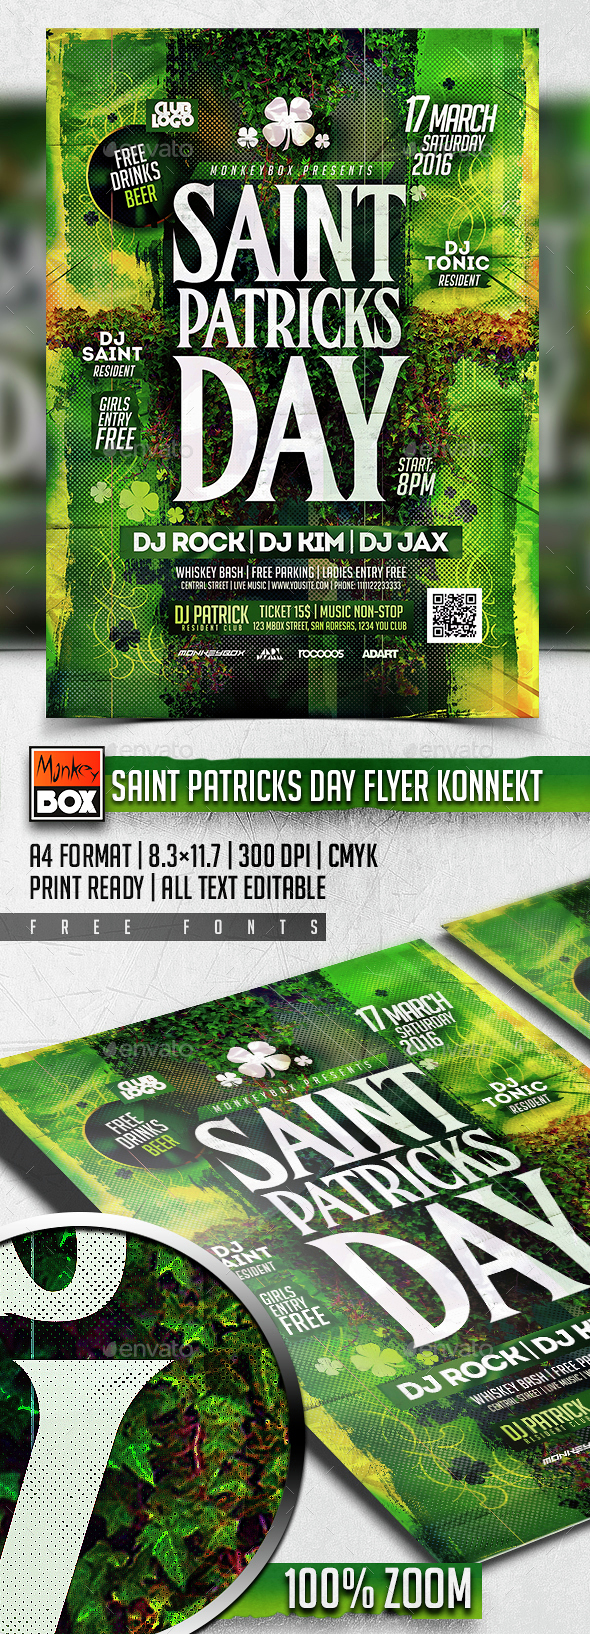 Saint Patricks Day Flyer Konnekt - Holidays Events